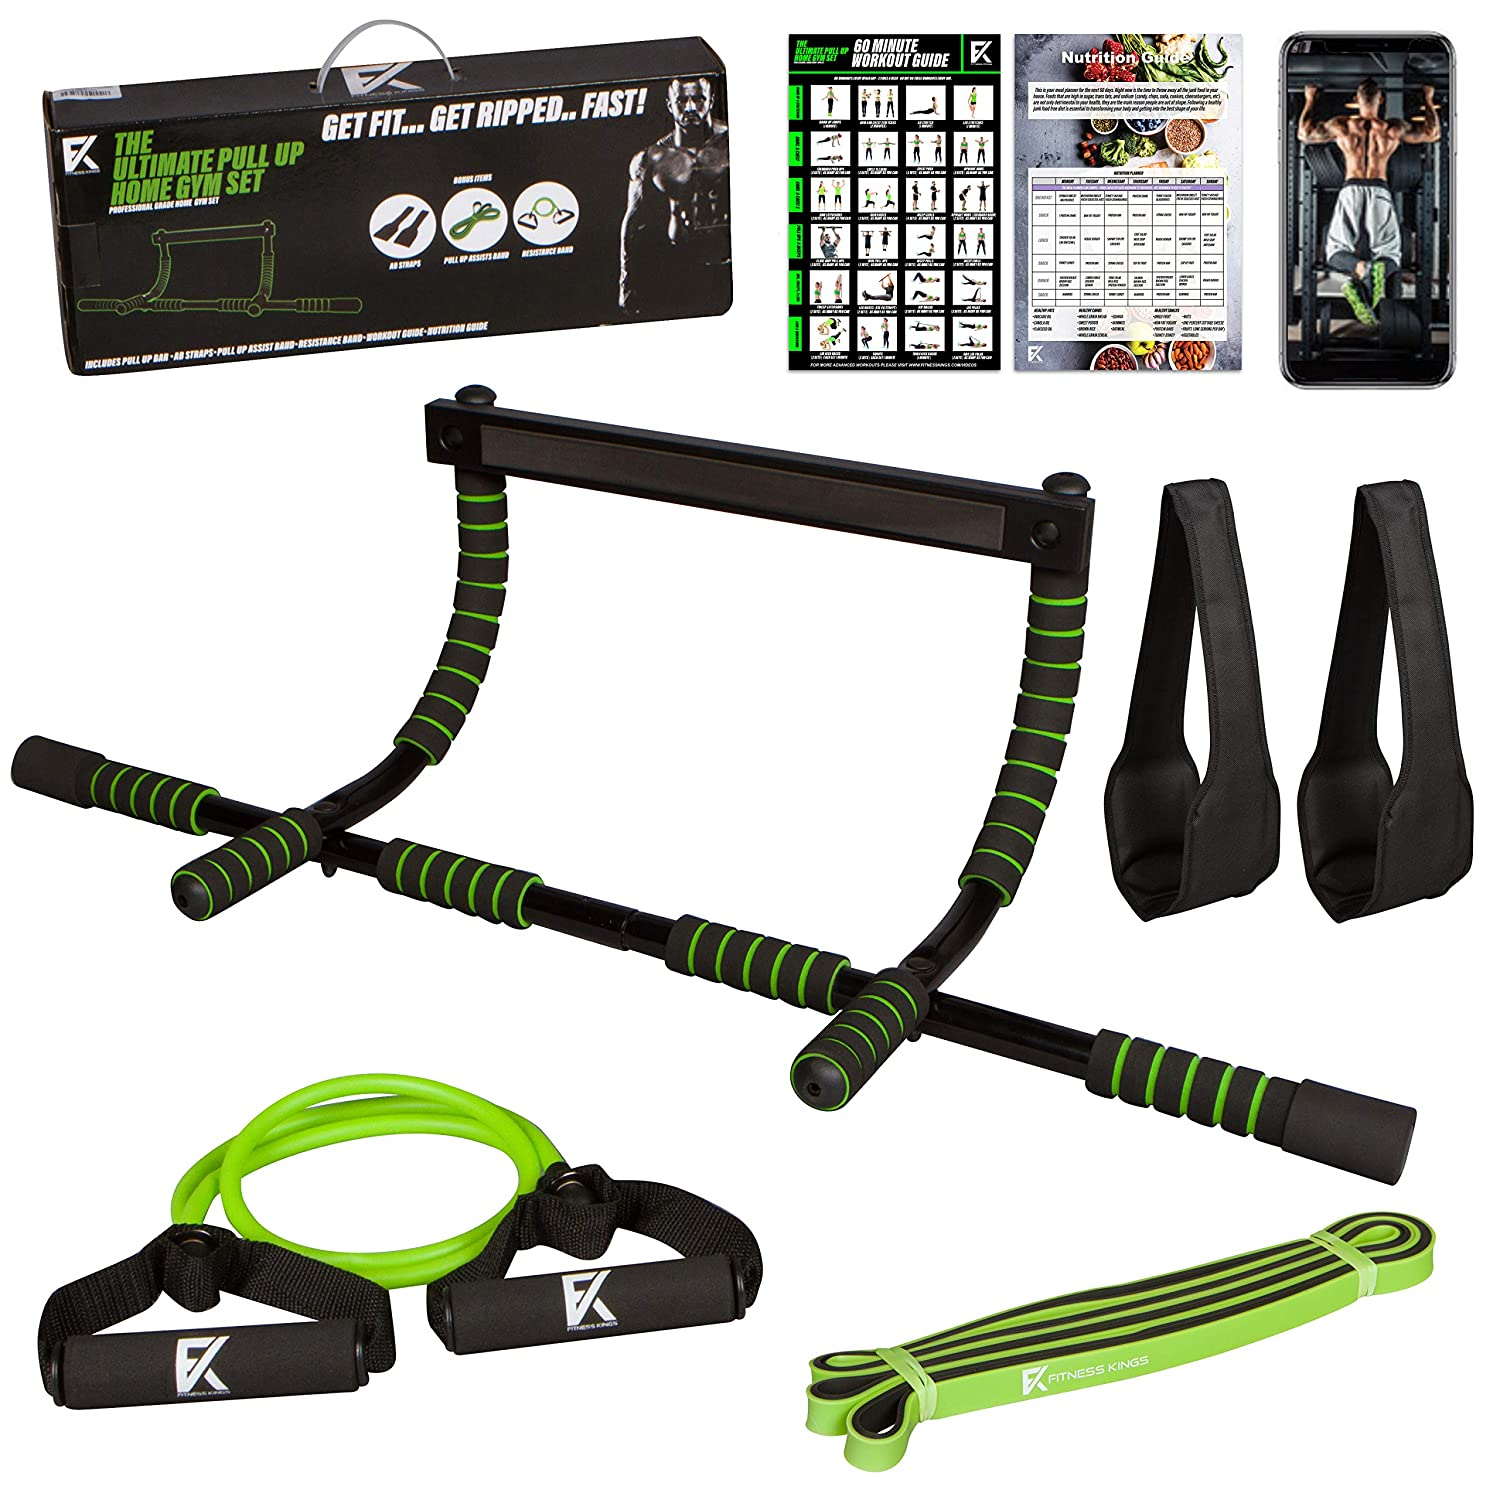 Fitness Kings Brand The Ultimate Pull Up Bar Set – 4 in 1 Door Chin Up Bar, Pull Up Assist Band, Ab Straps, Resistance Bands Home Gym Set w Workout Program